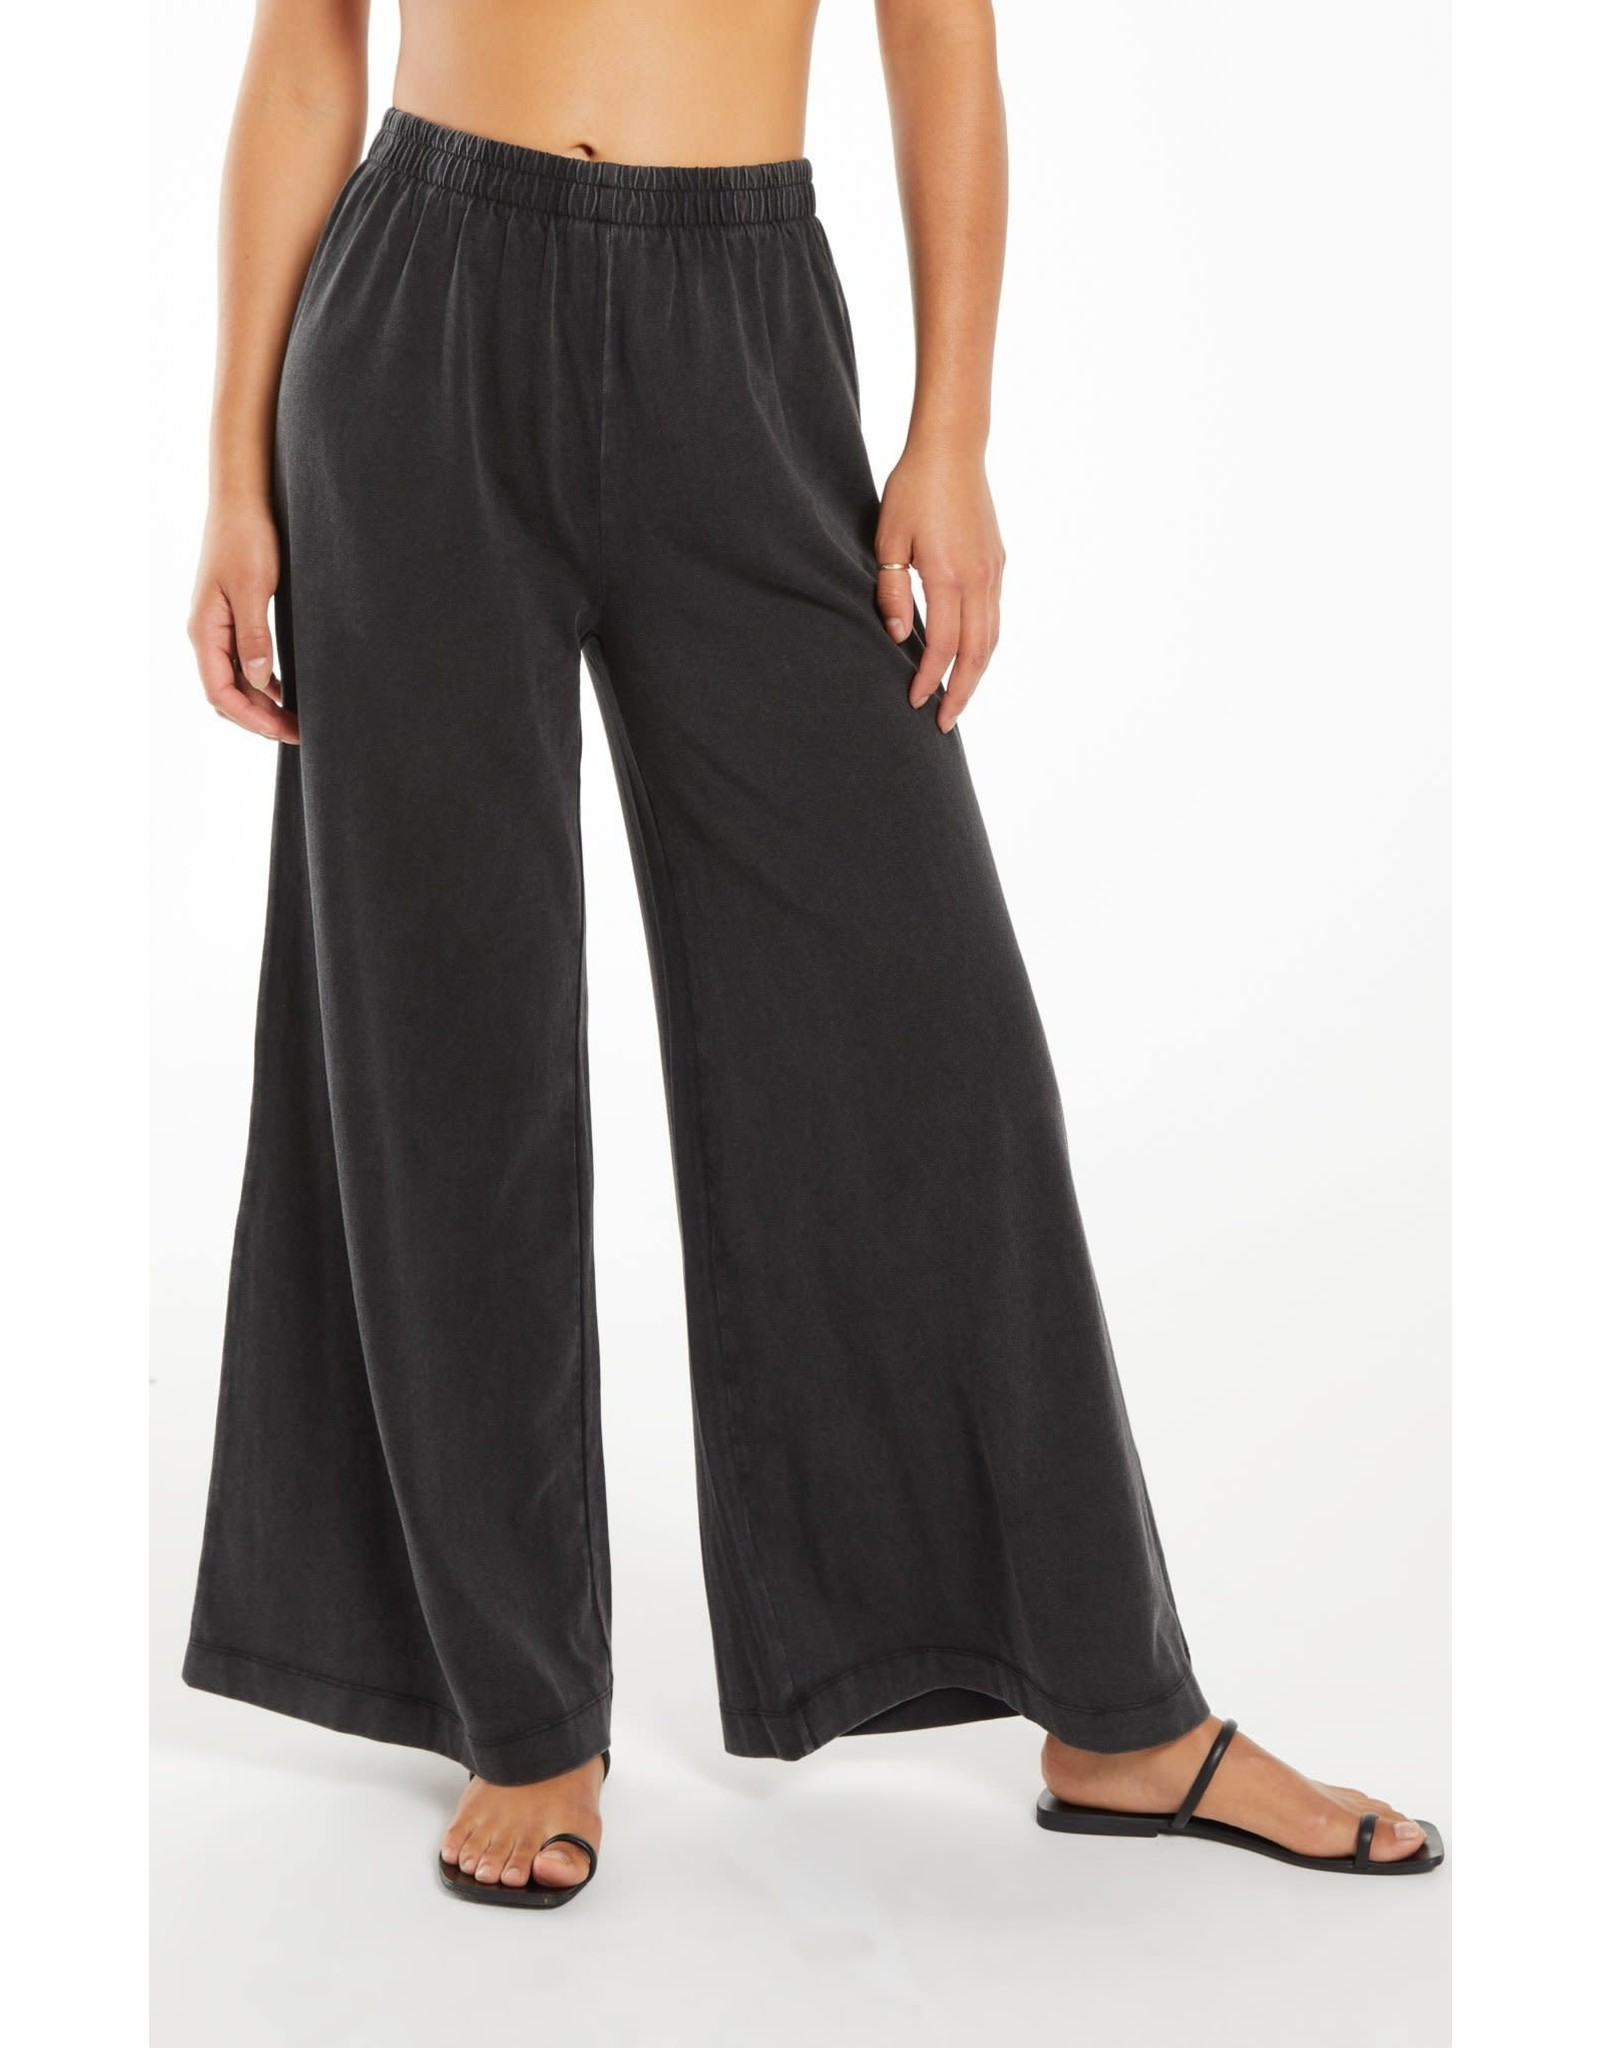 Z supply Z Supply Scout Flare Pant